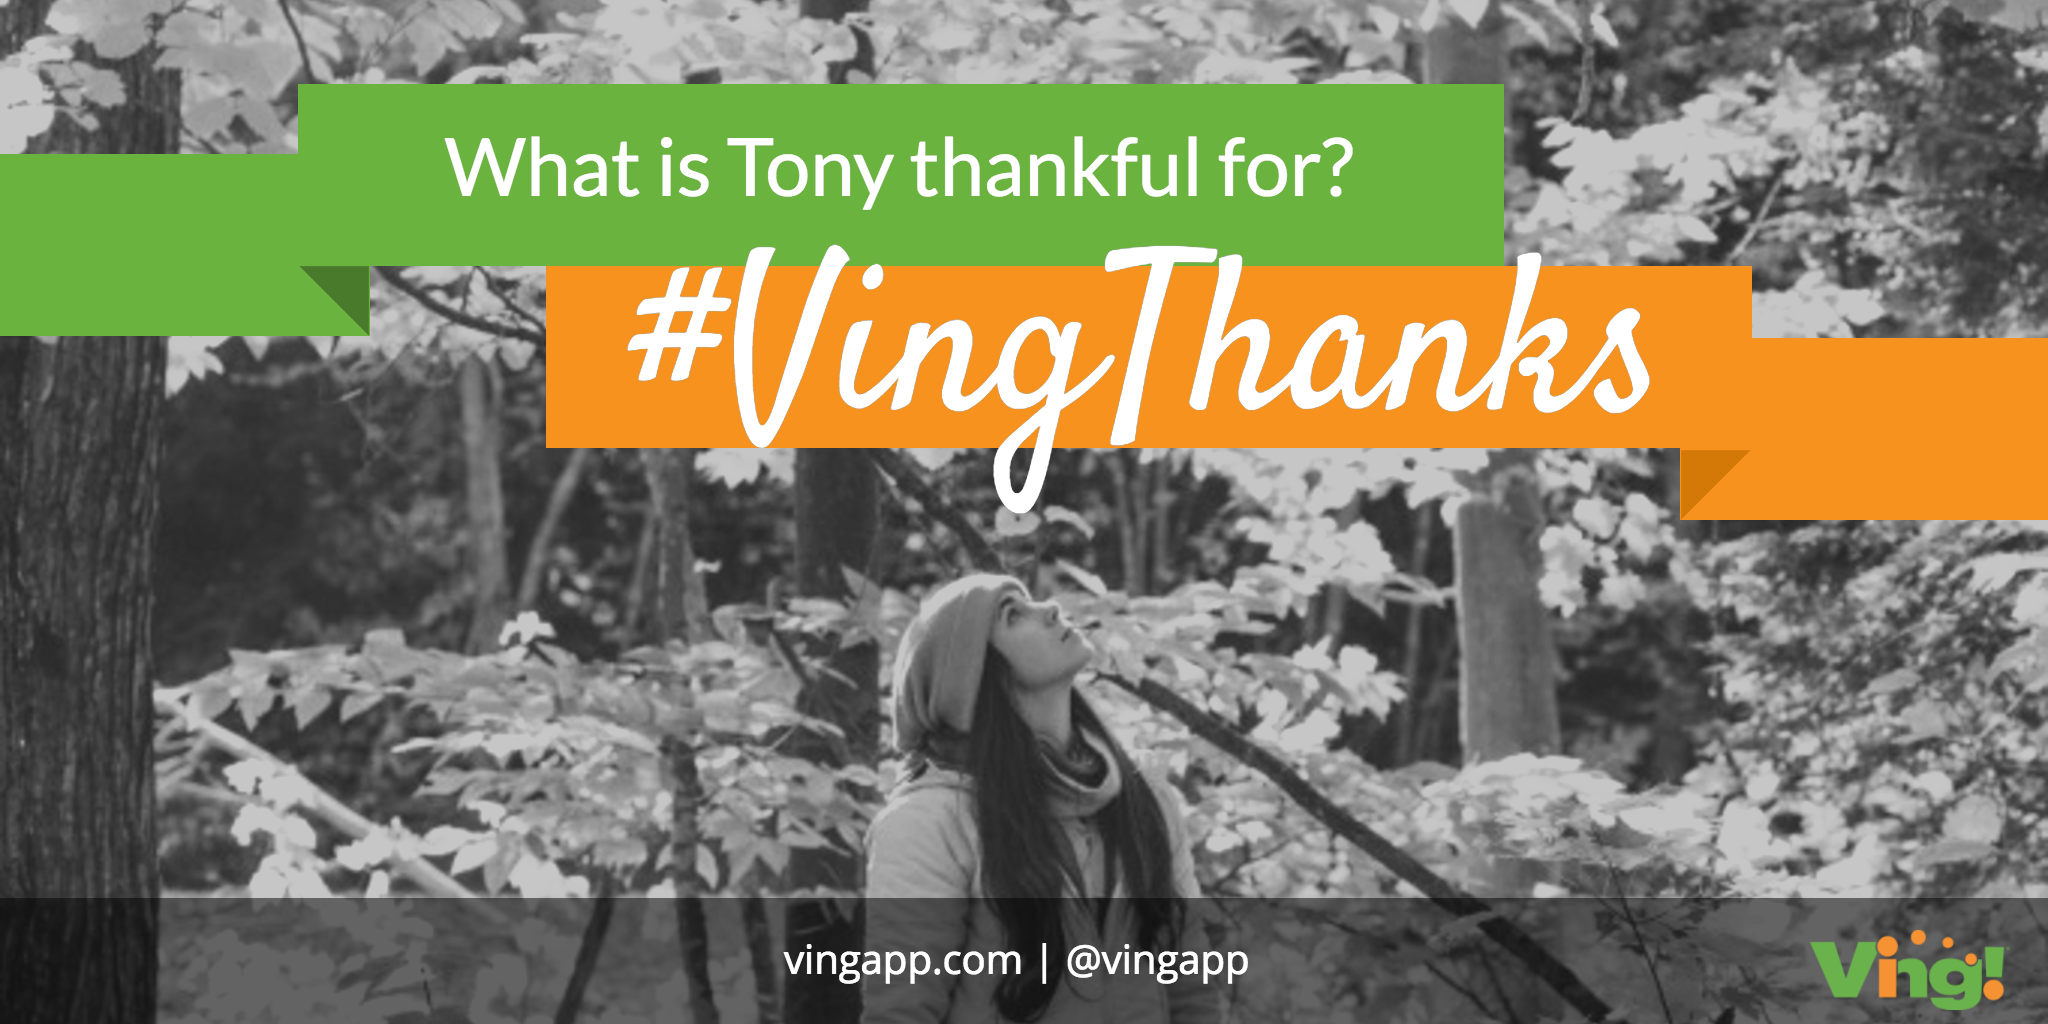 What Our Ving CEO Is Thankful For